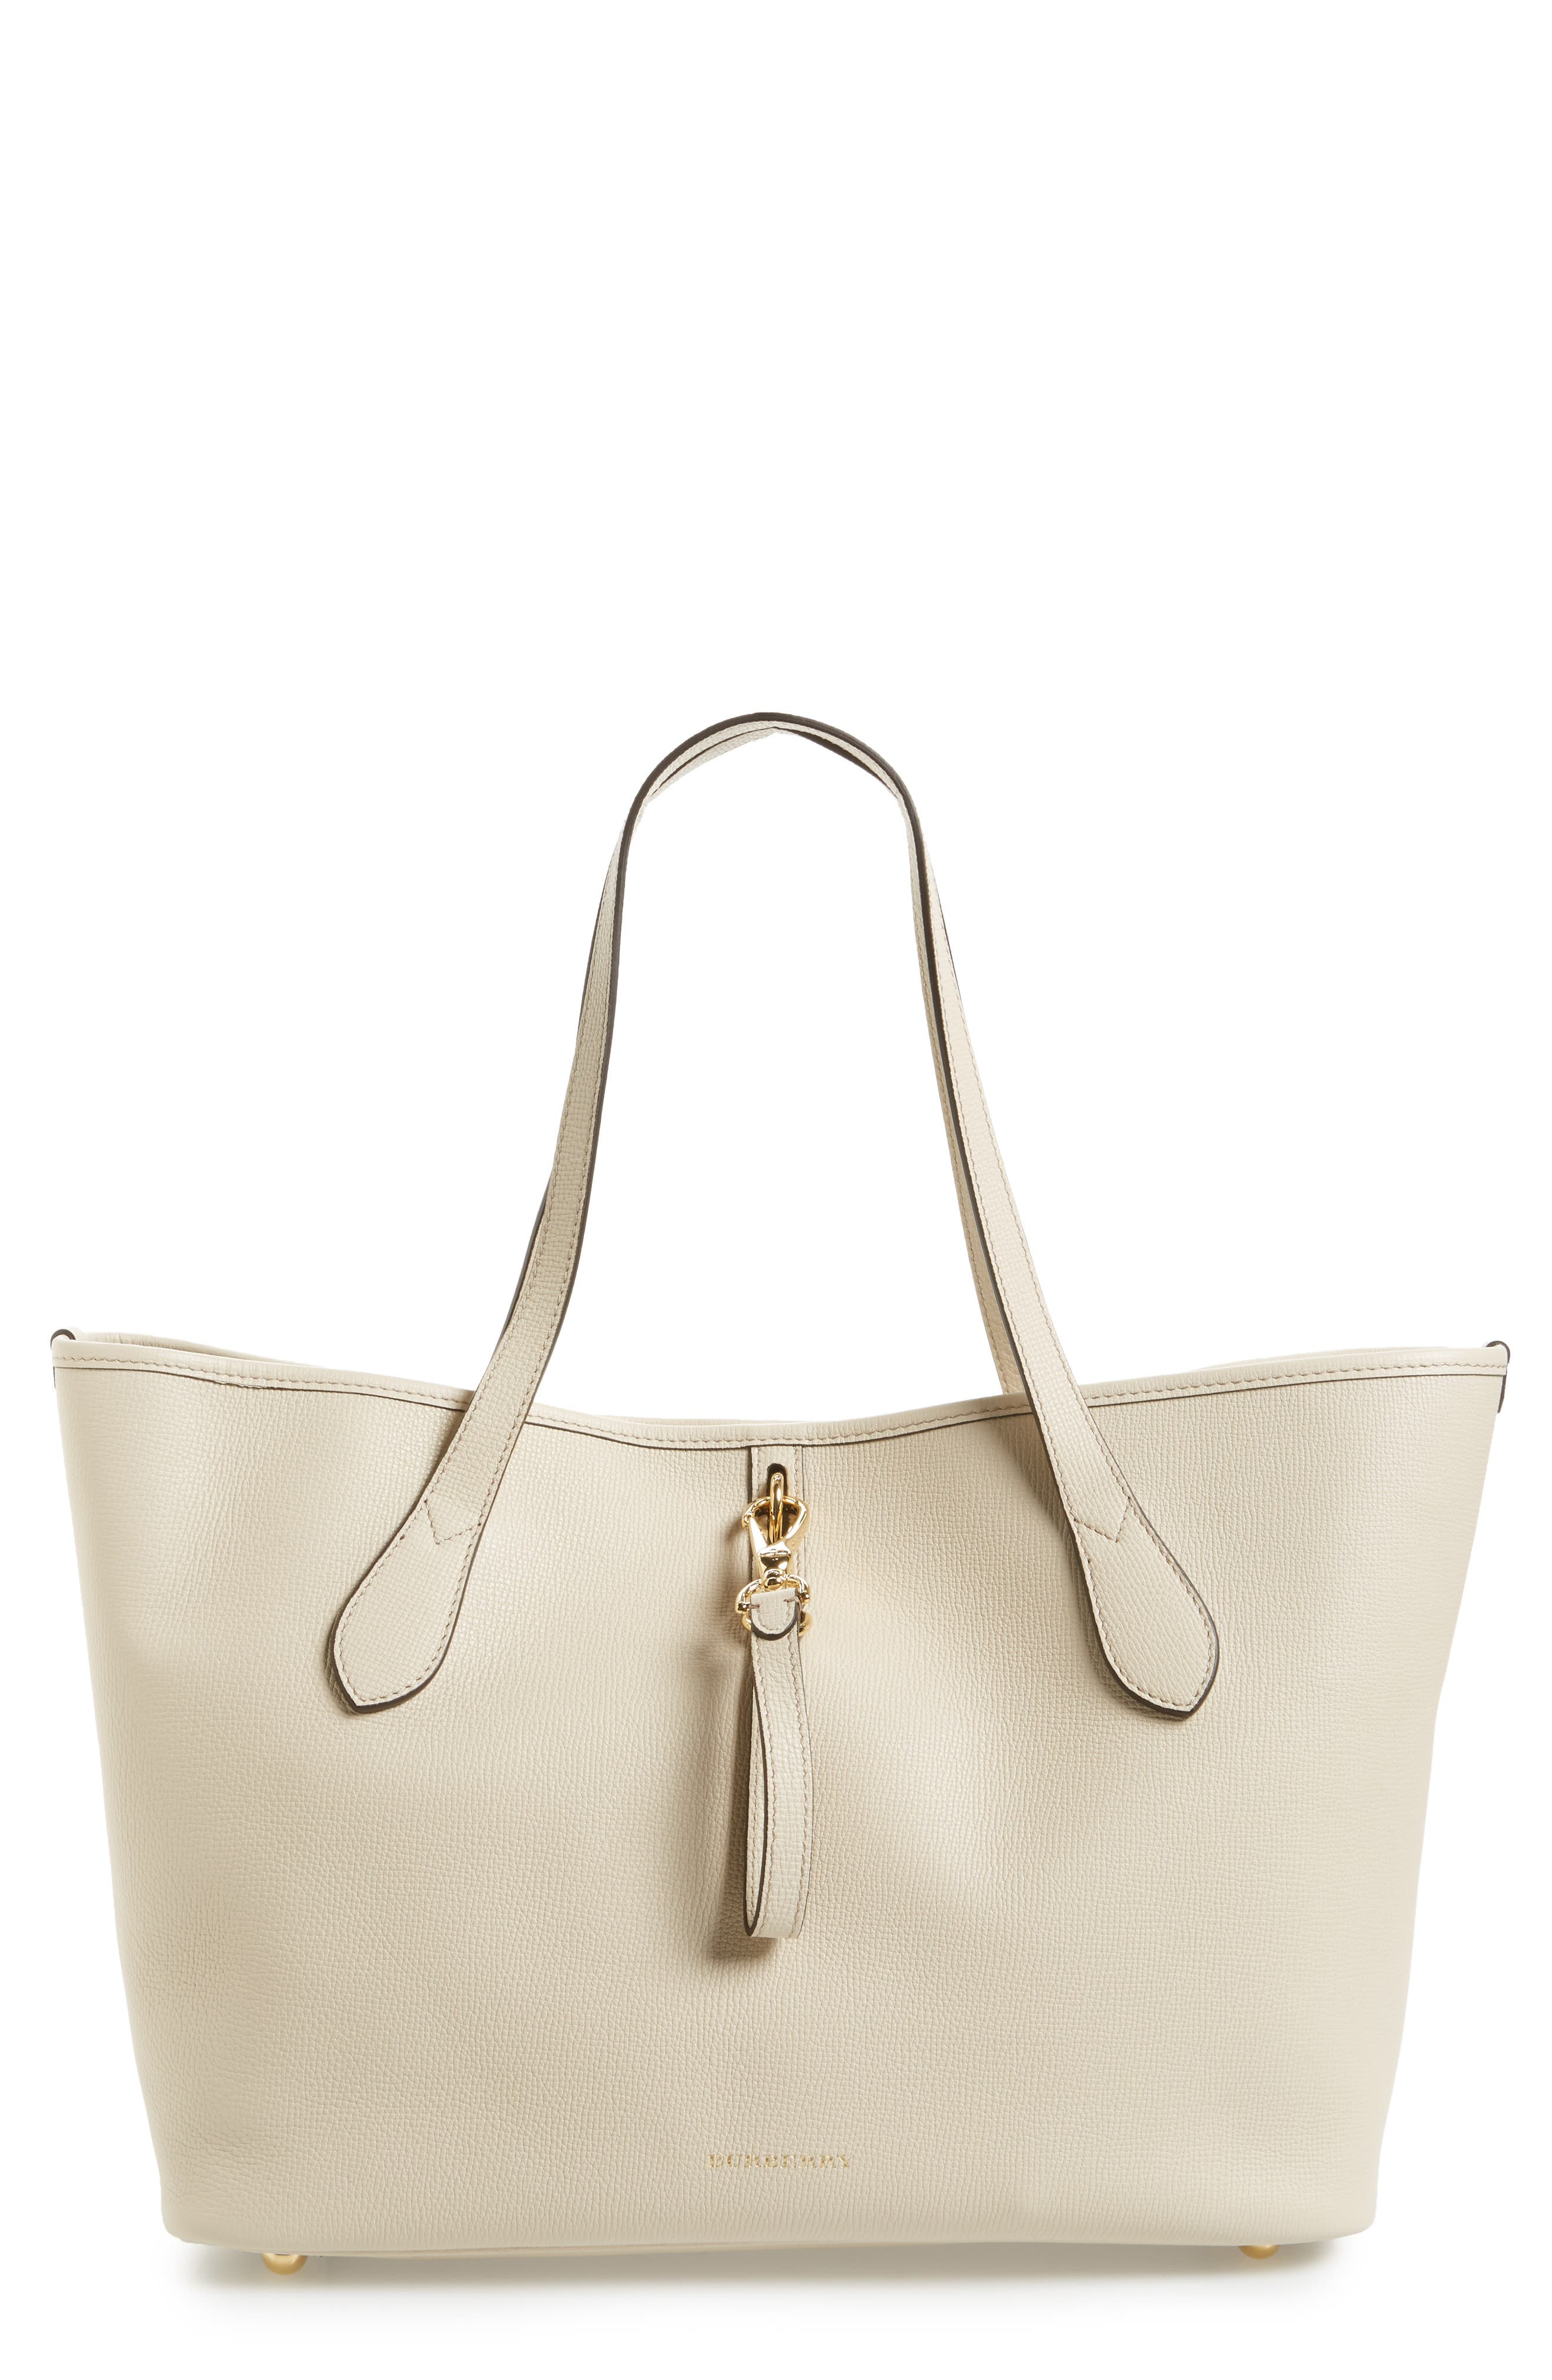 Alternate Image 1 Selected - Burberry Medium Honeybrook Leather Tote